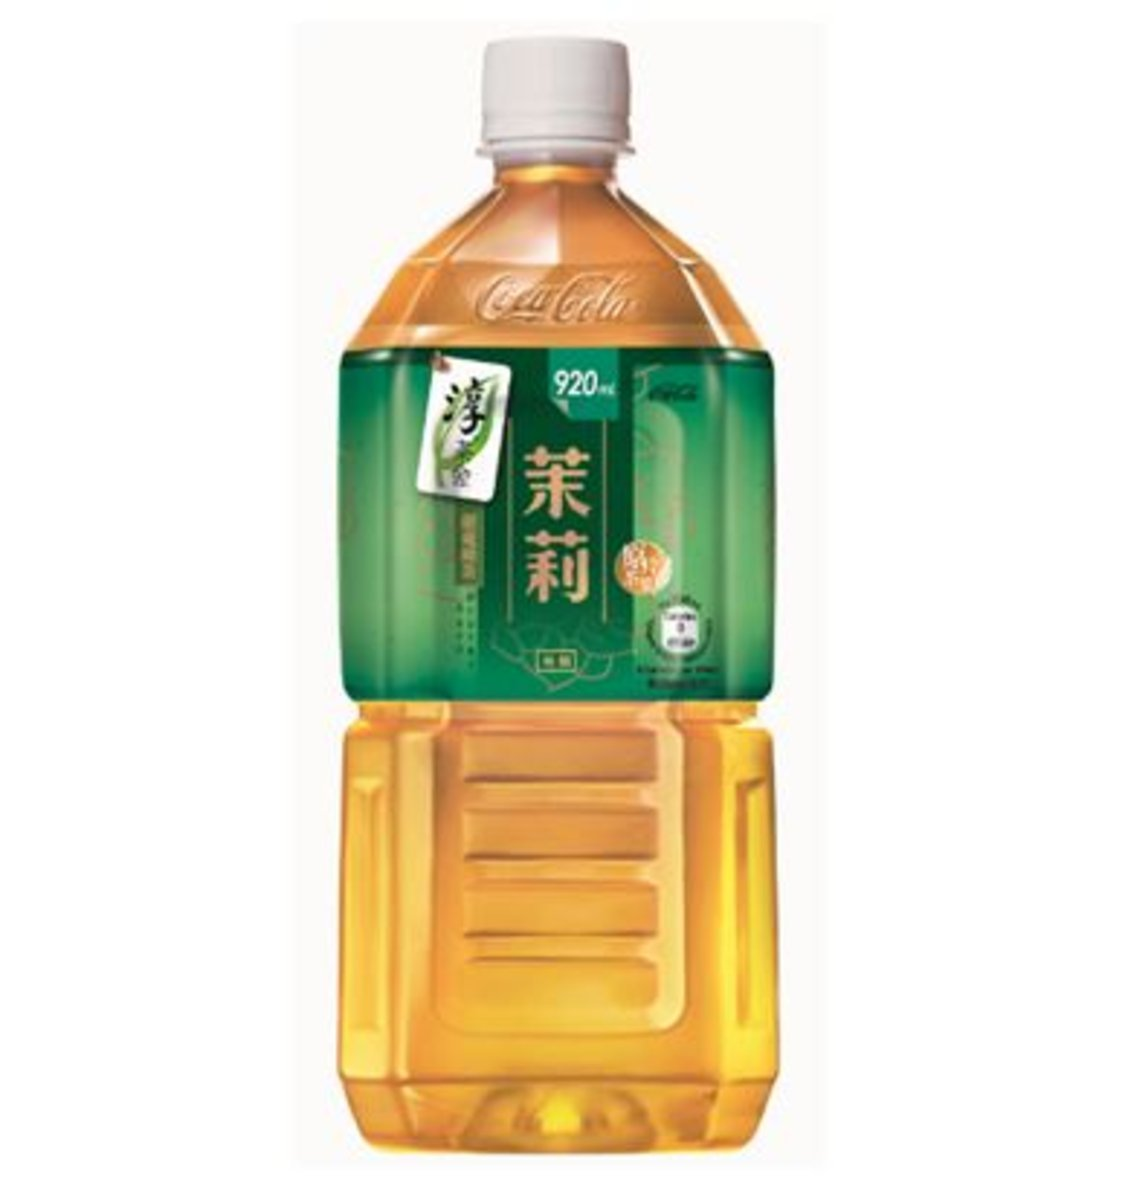 Yinhao Jasmine Green Tea (No Sugar) (Bottle)